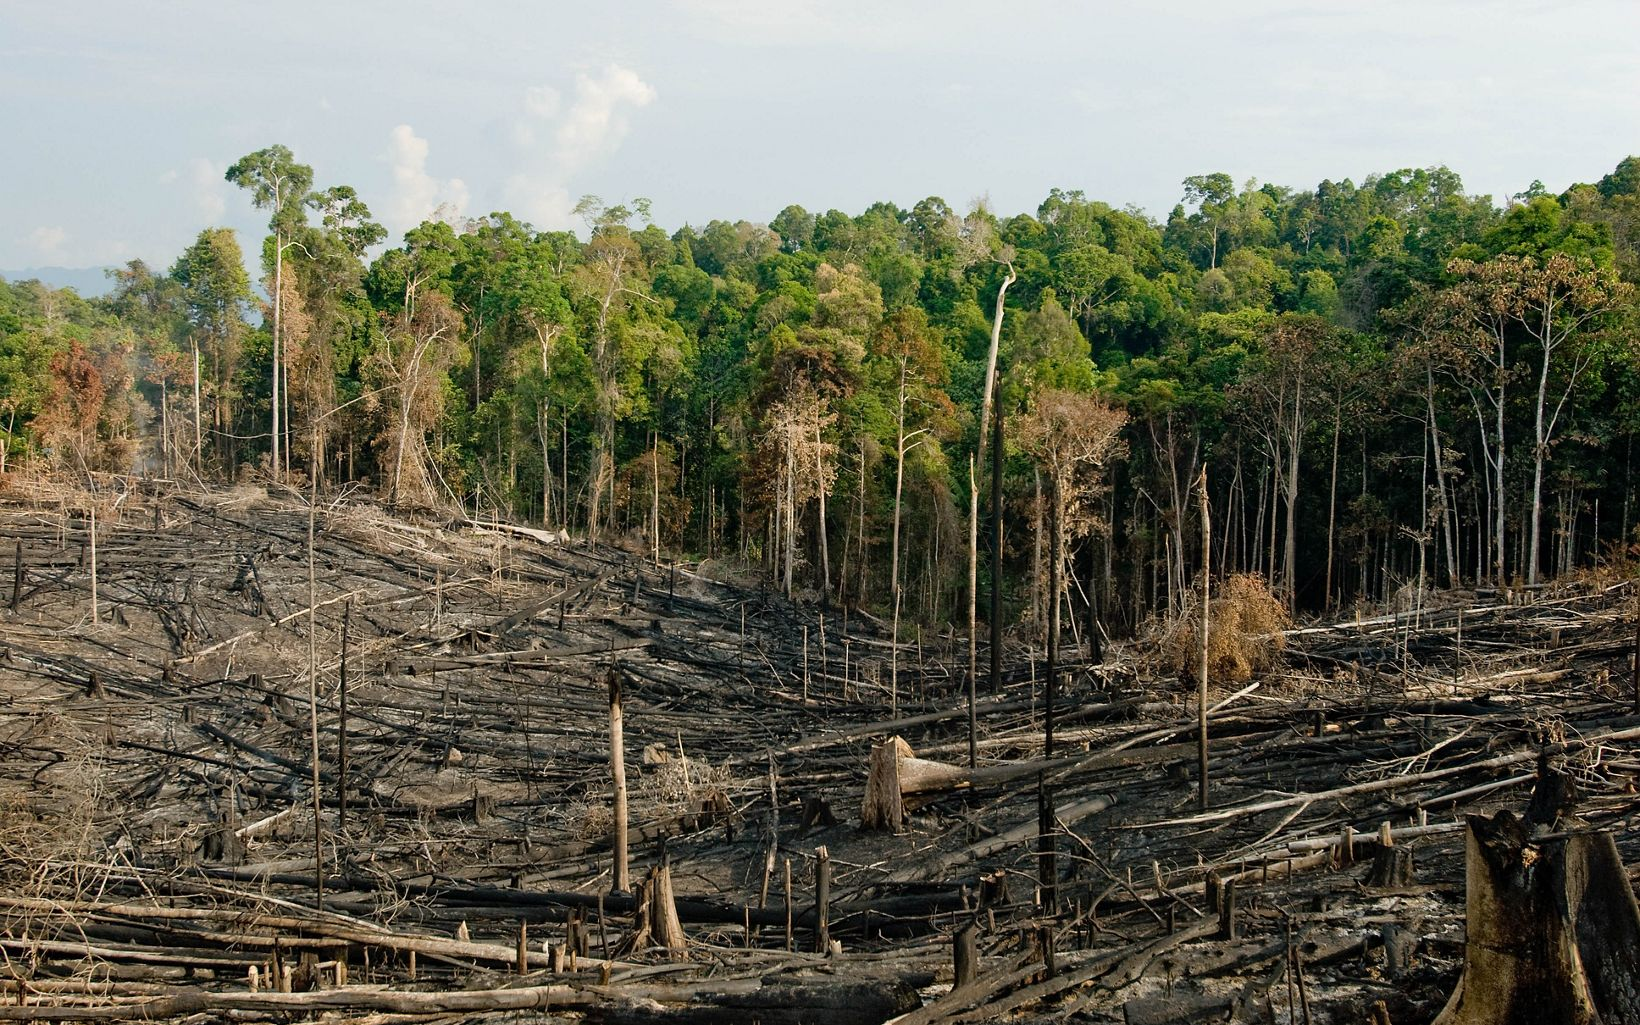 Tropical forest areas that have been deforested through a process of slash and burn to open areas for agriculture and subsistence farming in the Kalimantan region of Borneo, Indonesia.